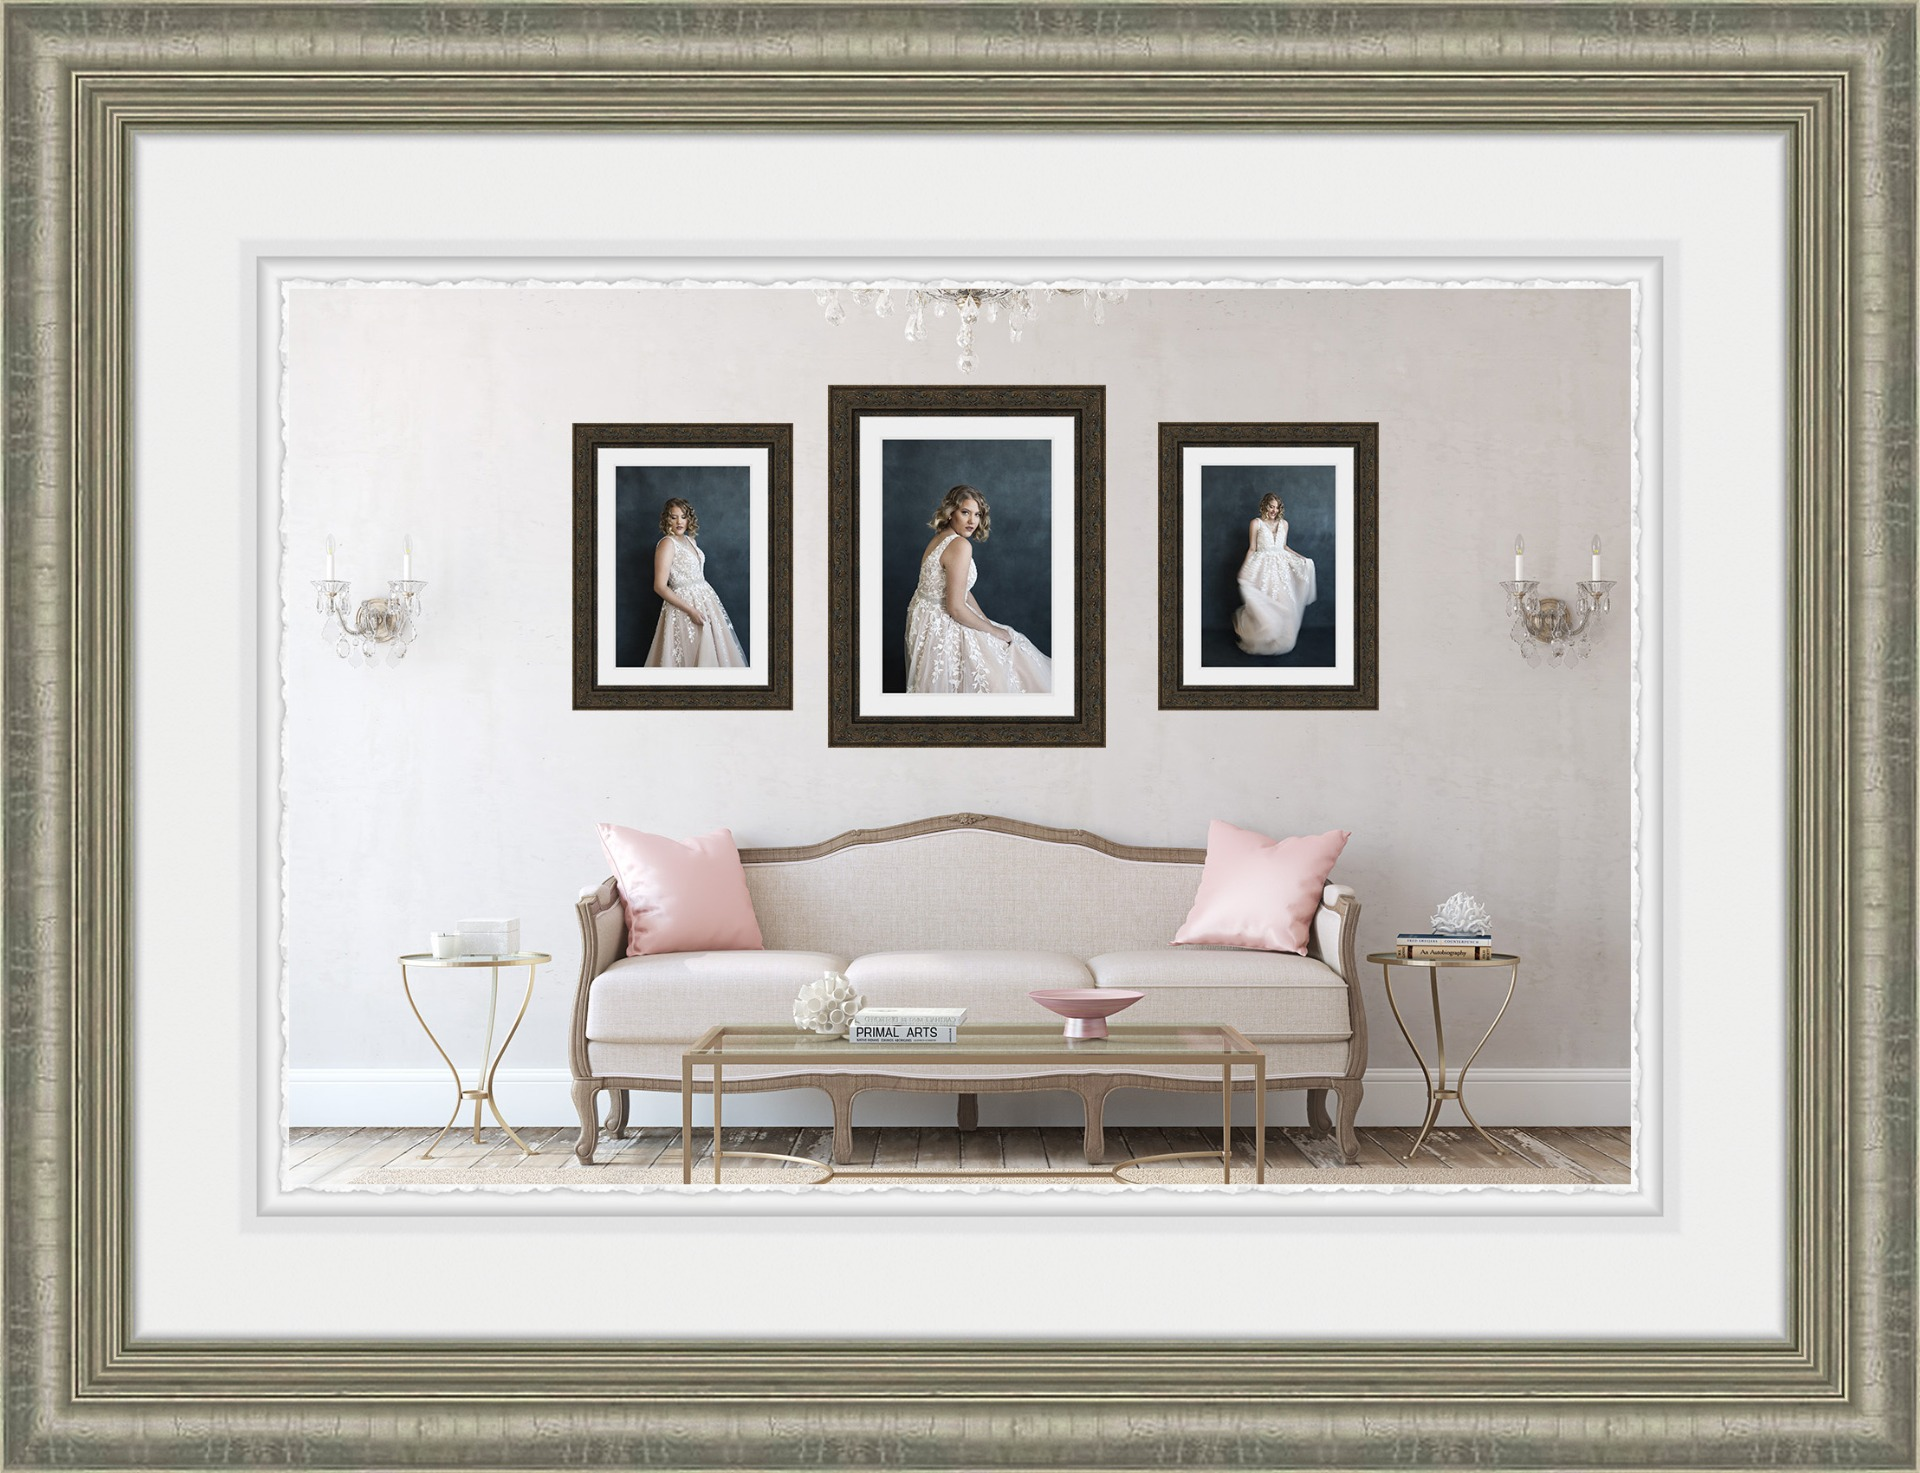 Cherish - How to appreciate your memorable photographs for decades...